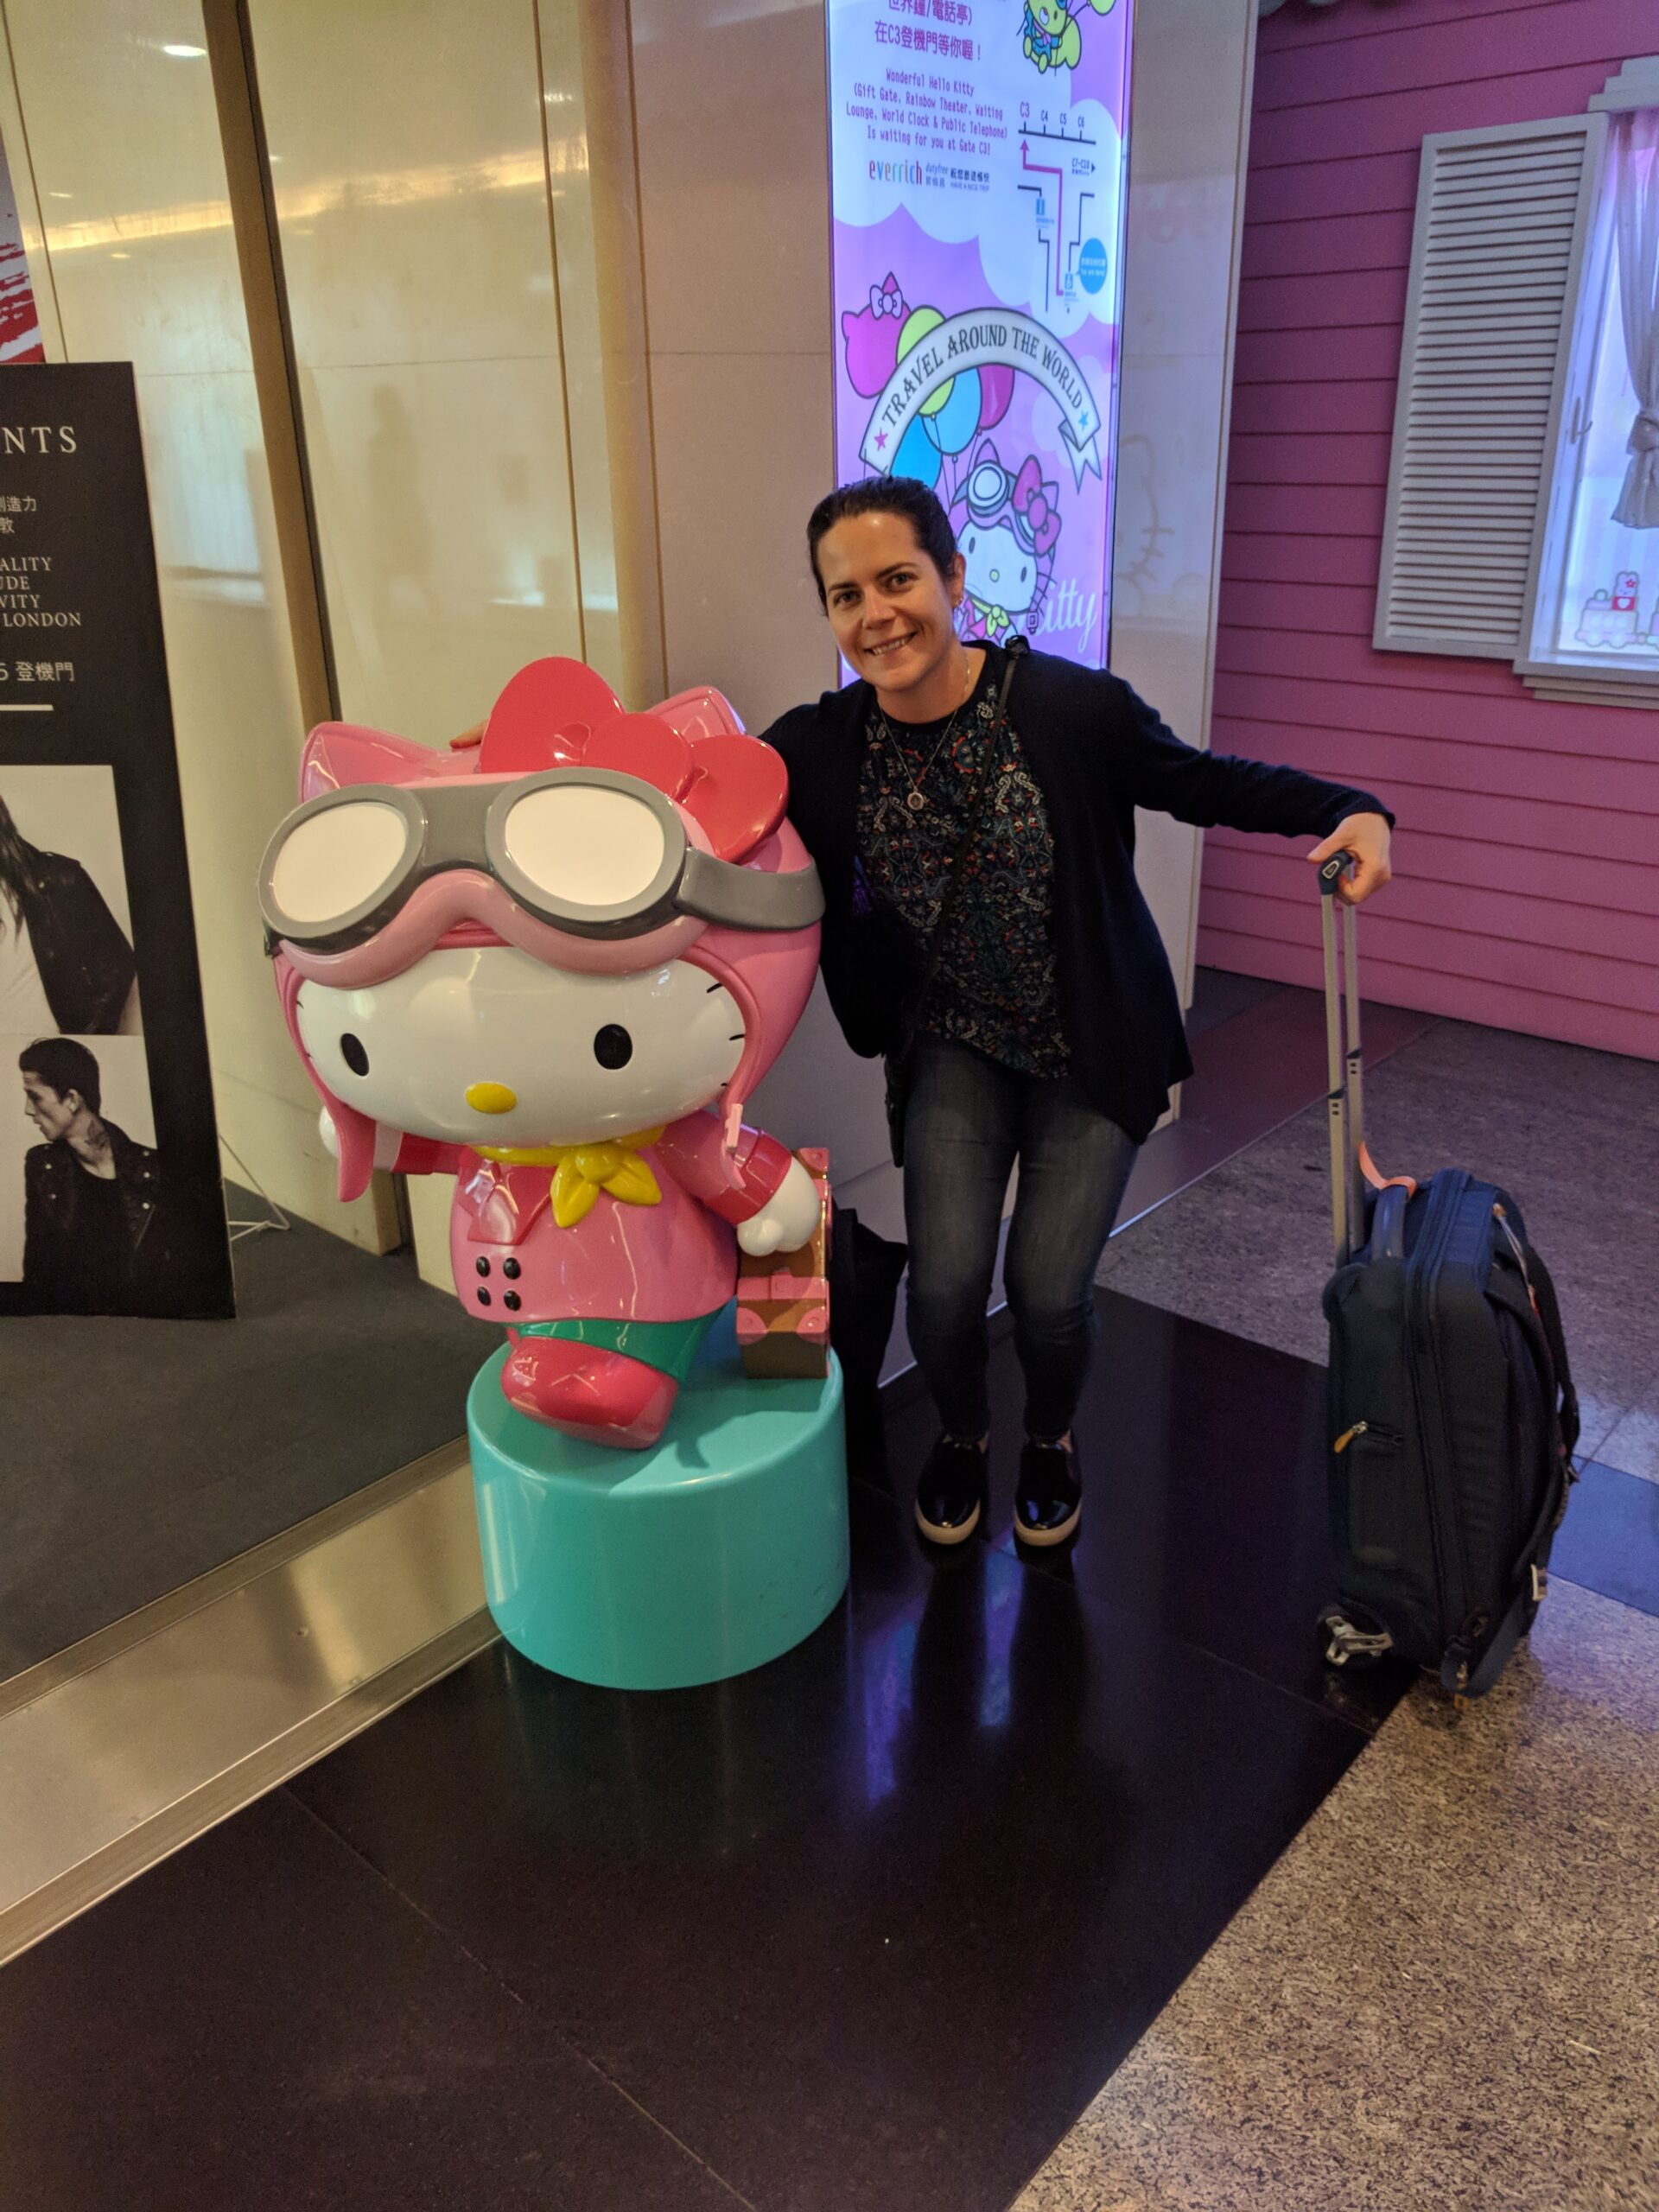 Max, Hello Kitty, and the Thule bag at Taipei Airport